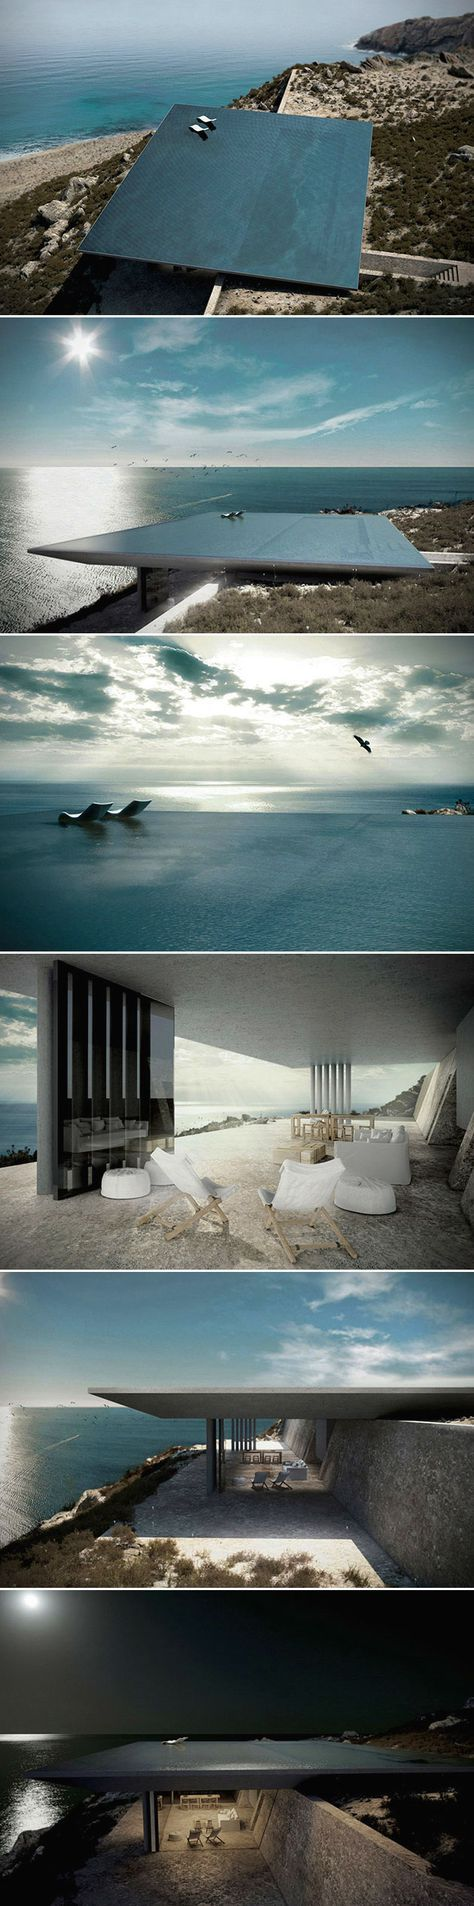 There are beach houses, and then there are beach houses. When it comes to waterfront properties, few rival the awesomeness that is the Mirage House. Spanning 198 square meters, this magnificent residence was designed by the the talented team at Kois Architecture. The dwelling is perched high on a steep, rocky hillside on the beautiful Greek islands of Tinos. So where's the actual house? Good question. The interior will be built into the hillside, buried in the landscape. The infinity pool…